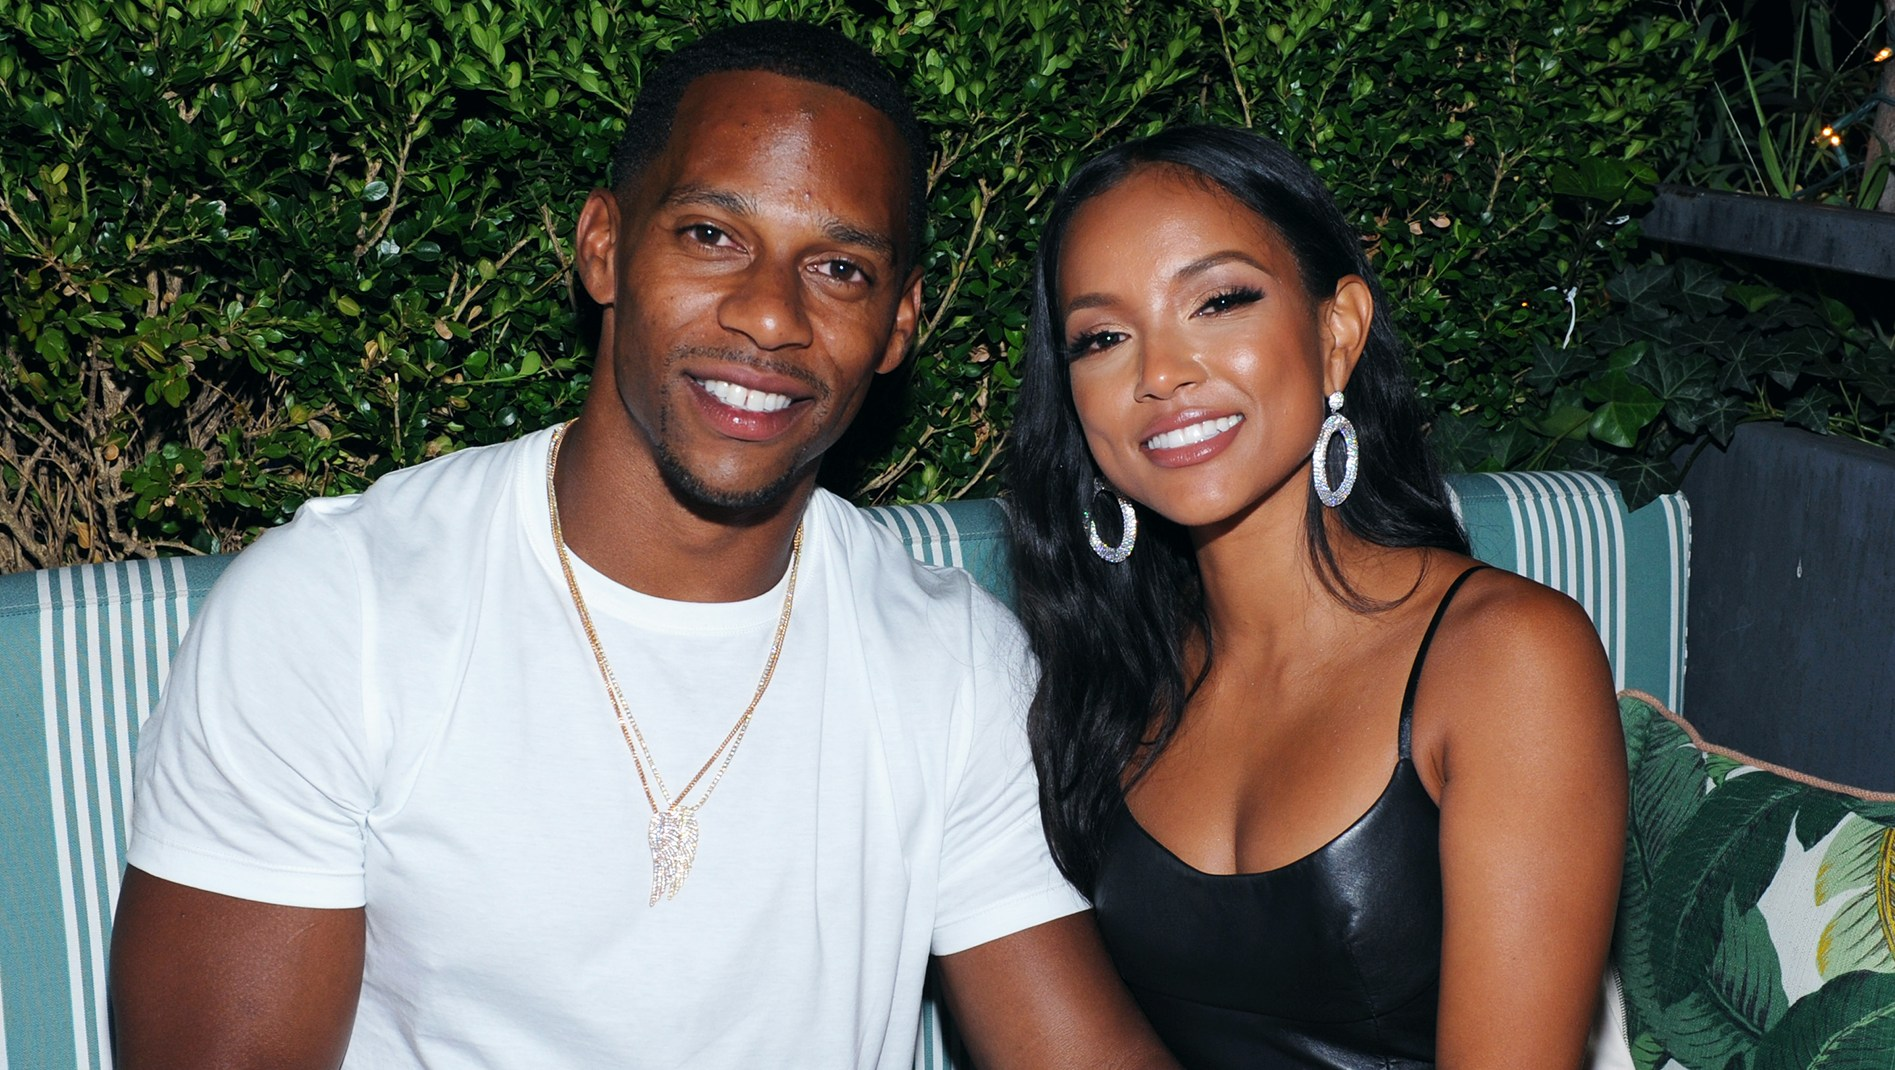 Victor Cruz Announces Retirement From NFL Hours After Attending VMAs 2018 With Karrueche Tran